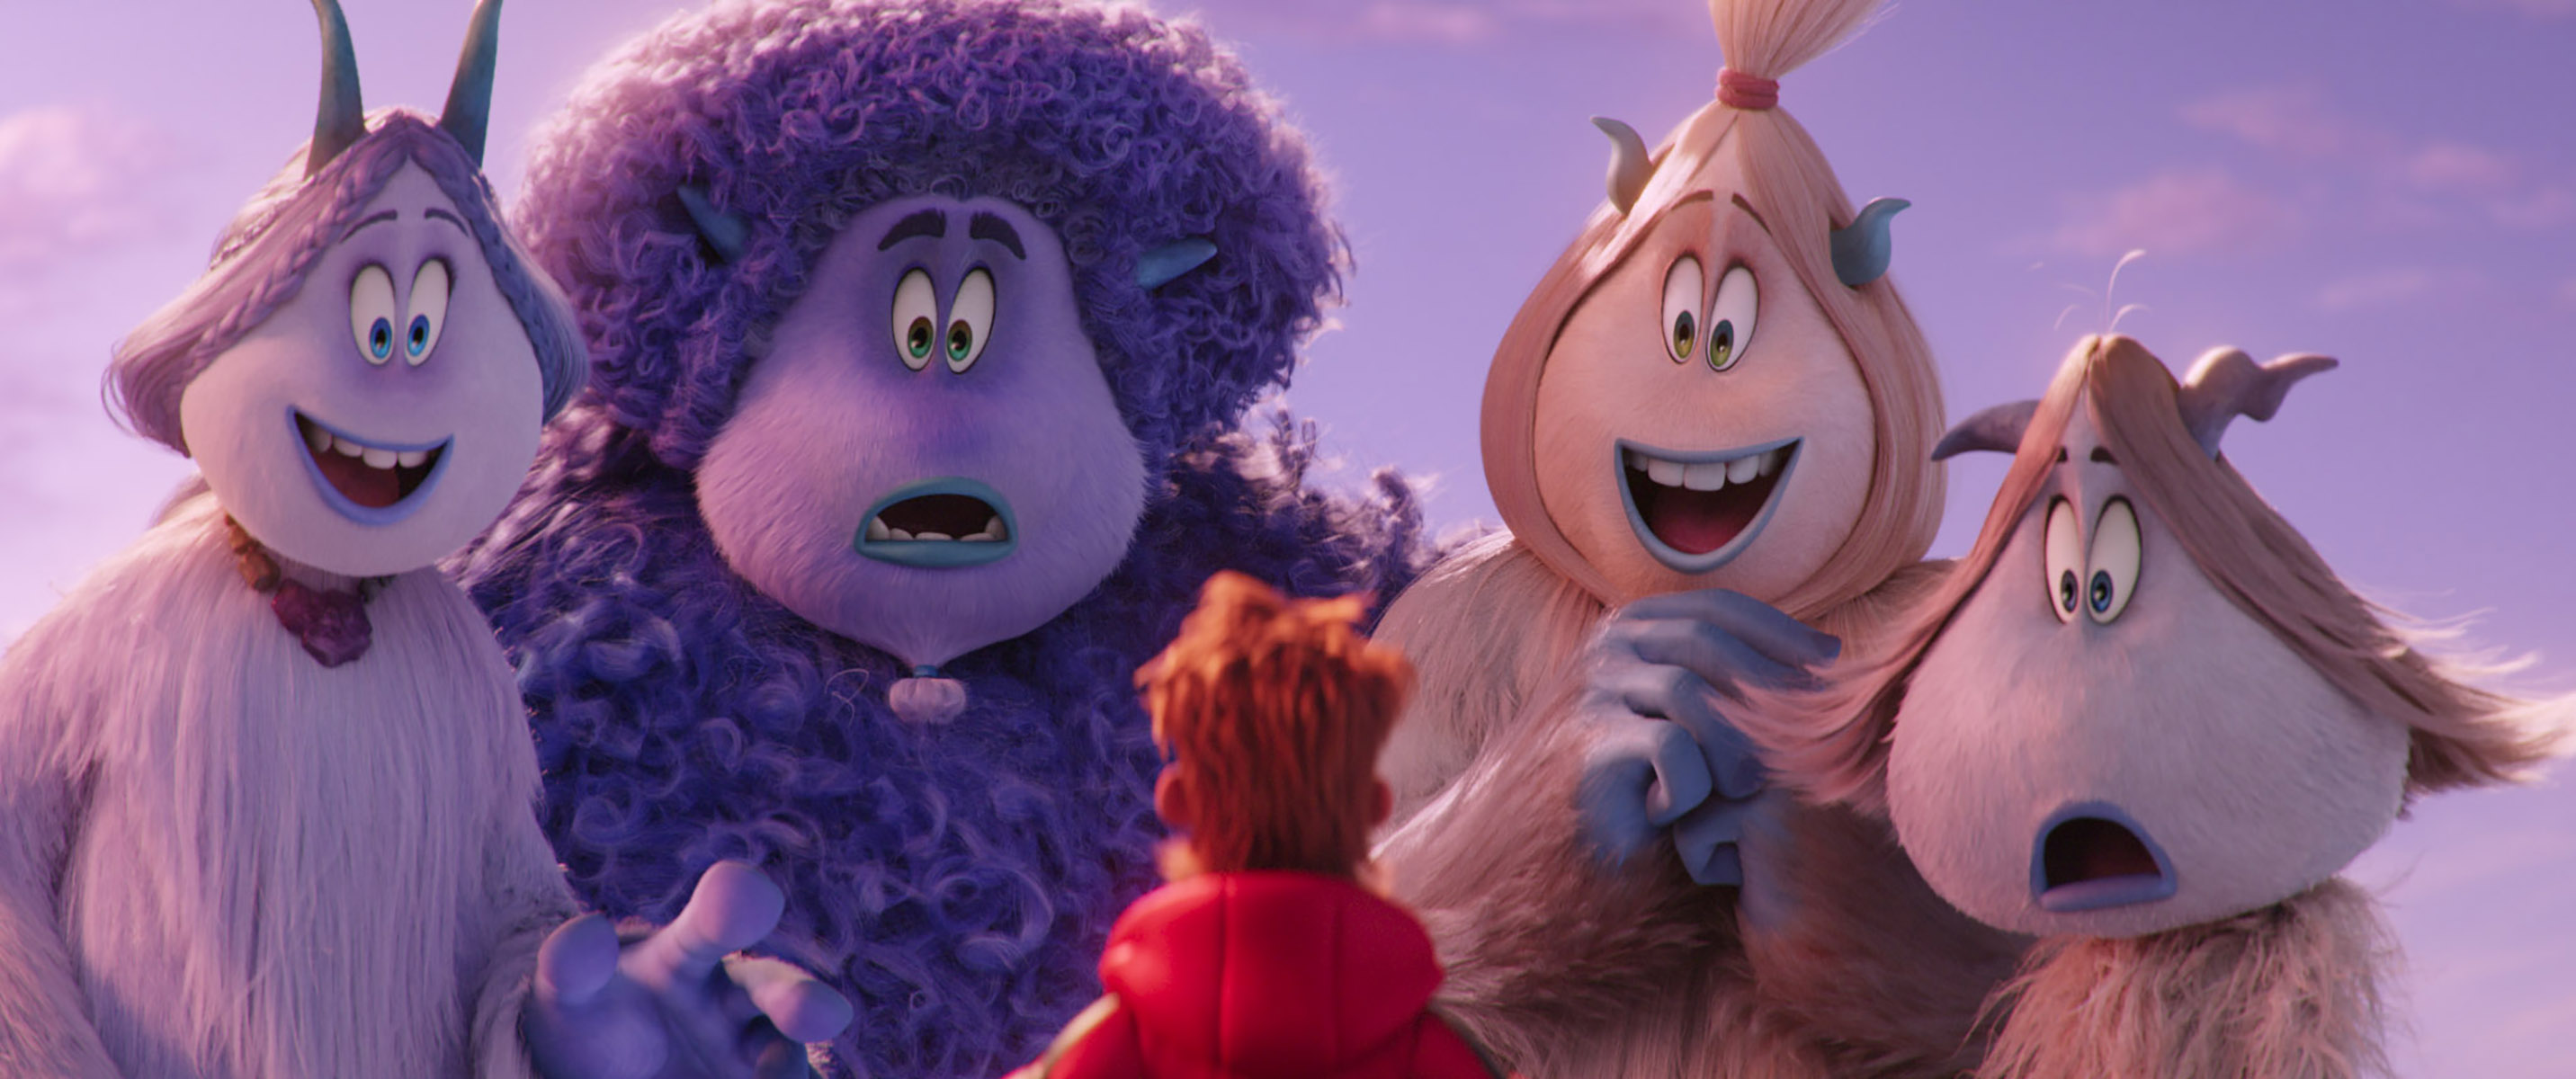 Smallfoot Gallery 24